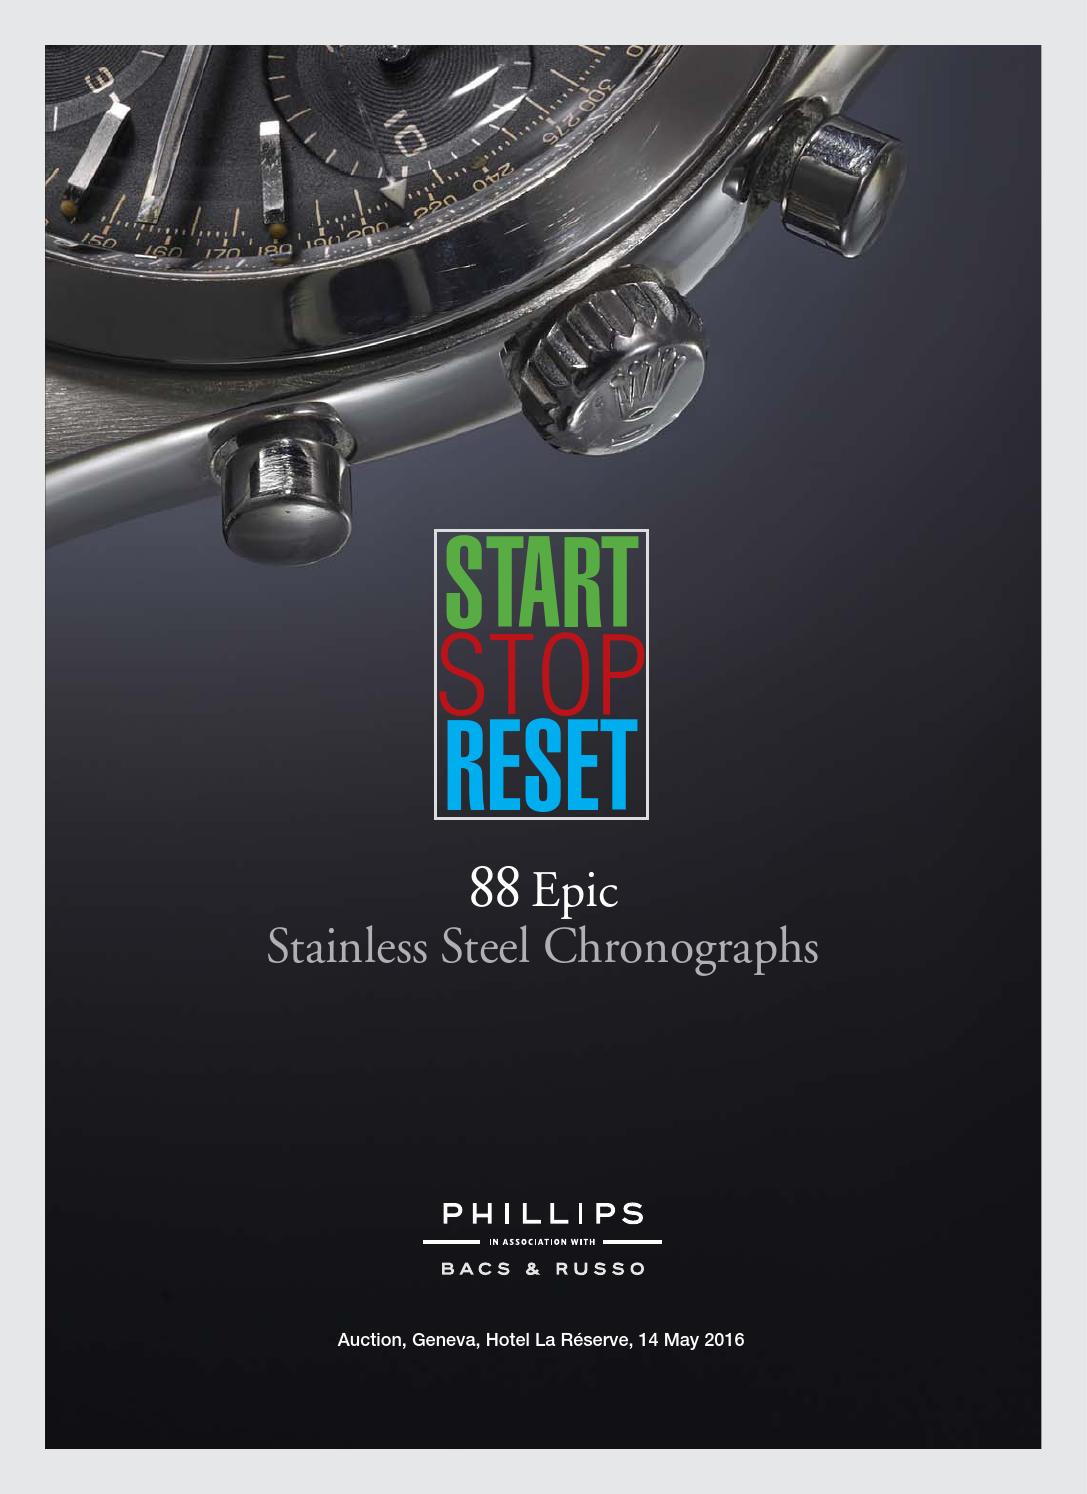 START-STOP-RESET  88 EPIC STAINLESS STEEL CHRONOGRAPHS  Catalogue  by  PHILLIPS - issuu a8f790b87f